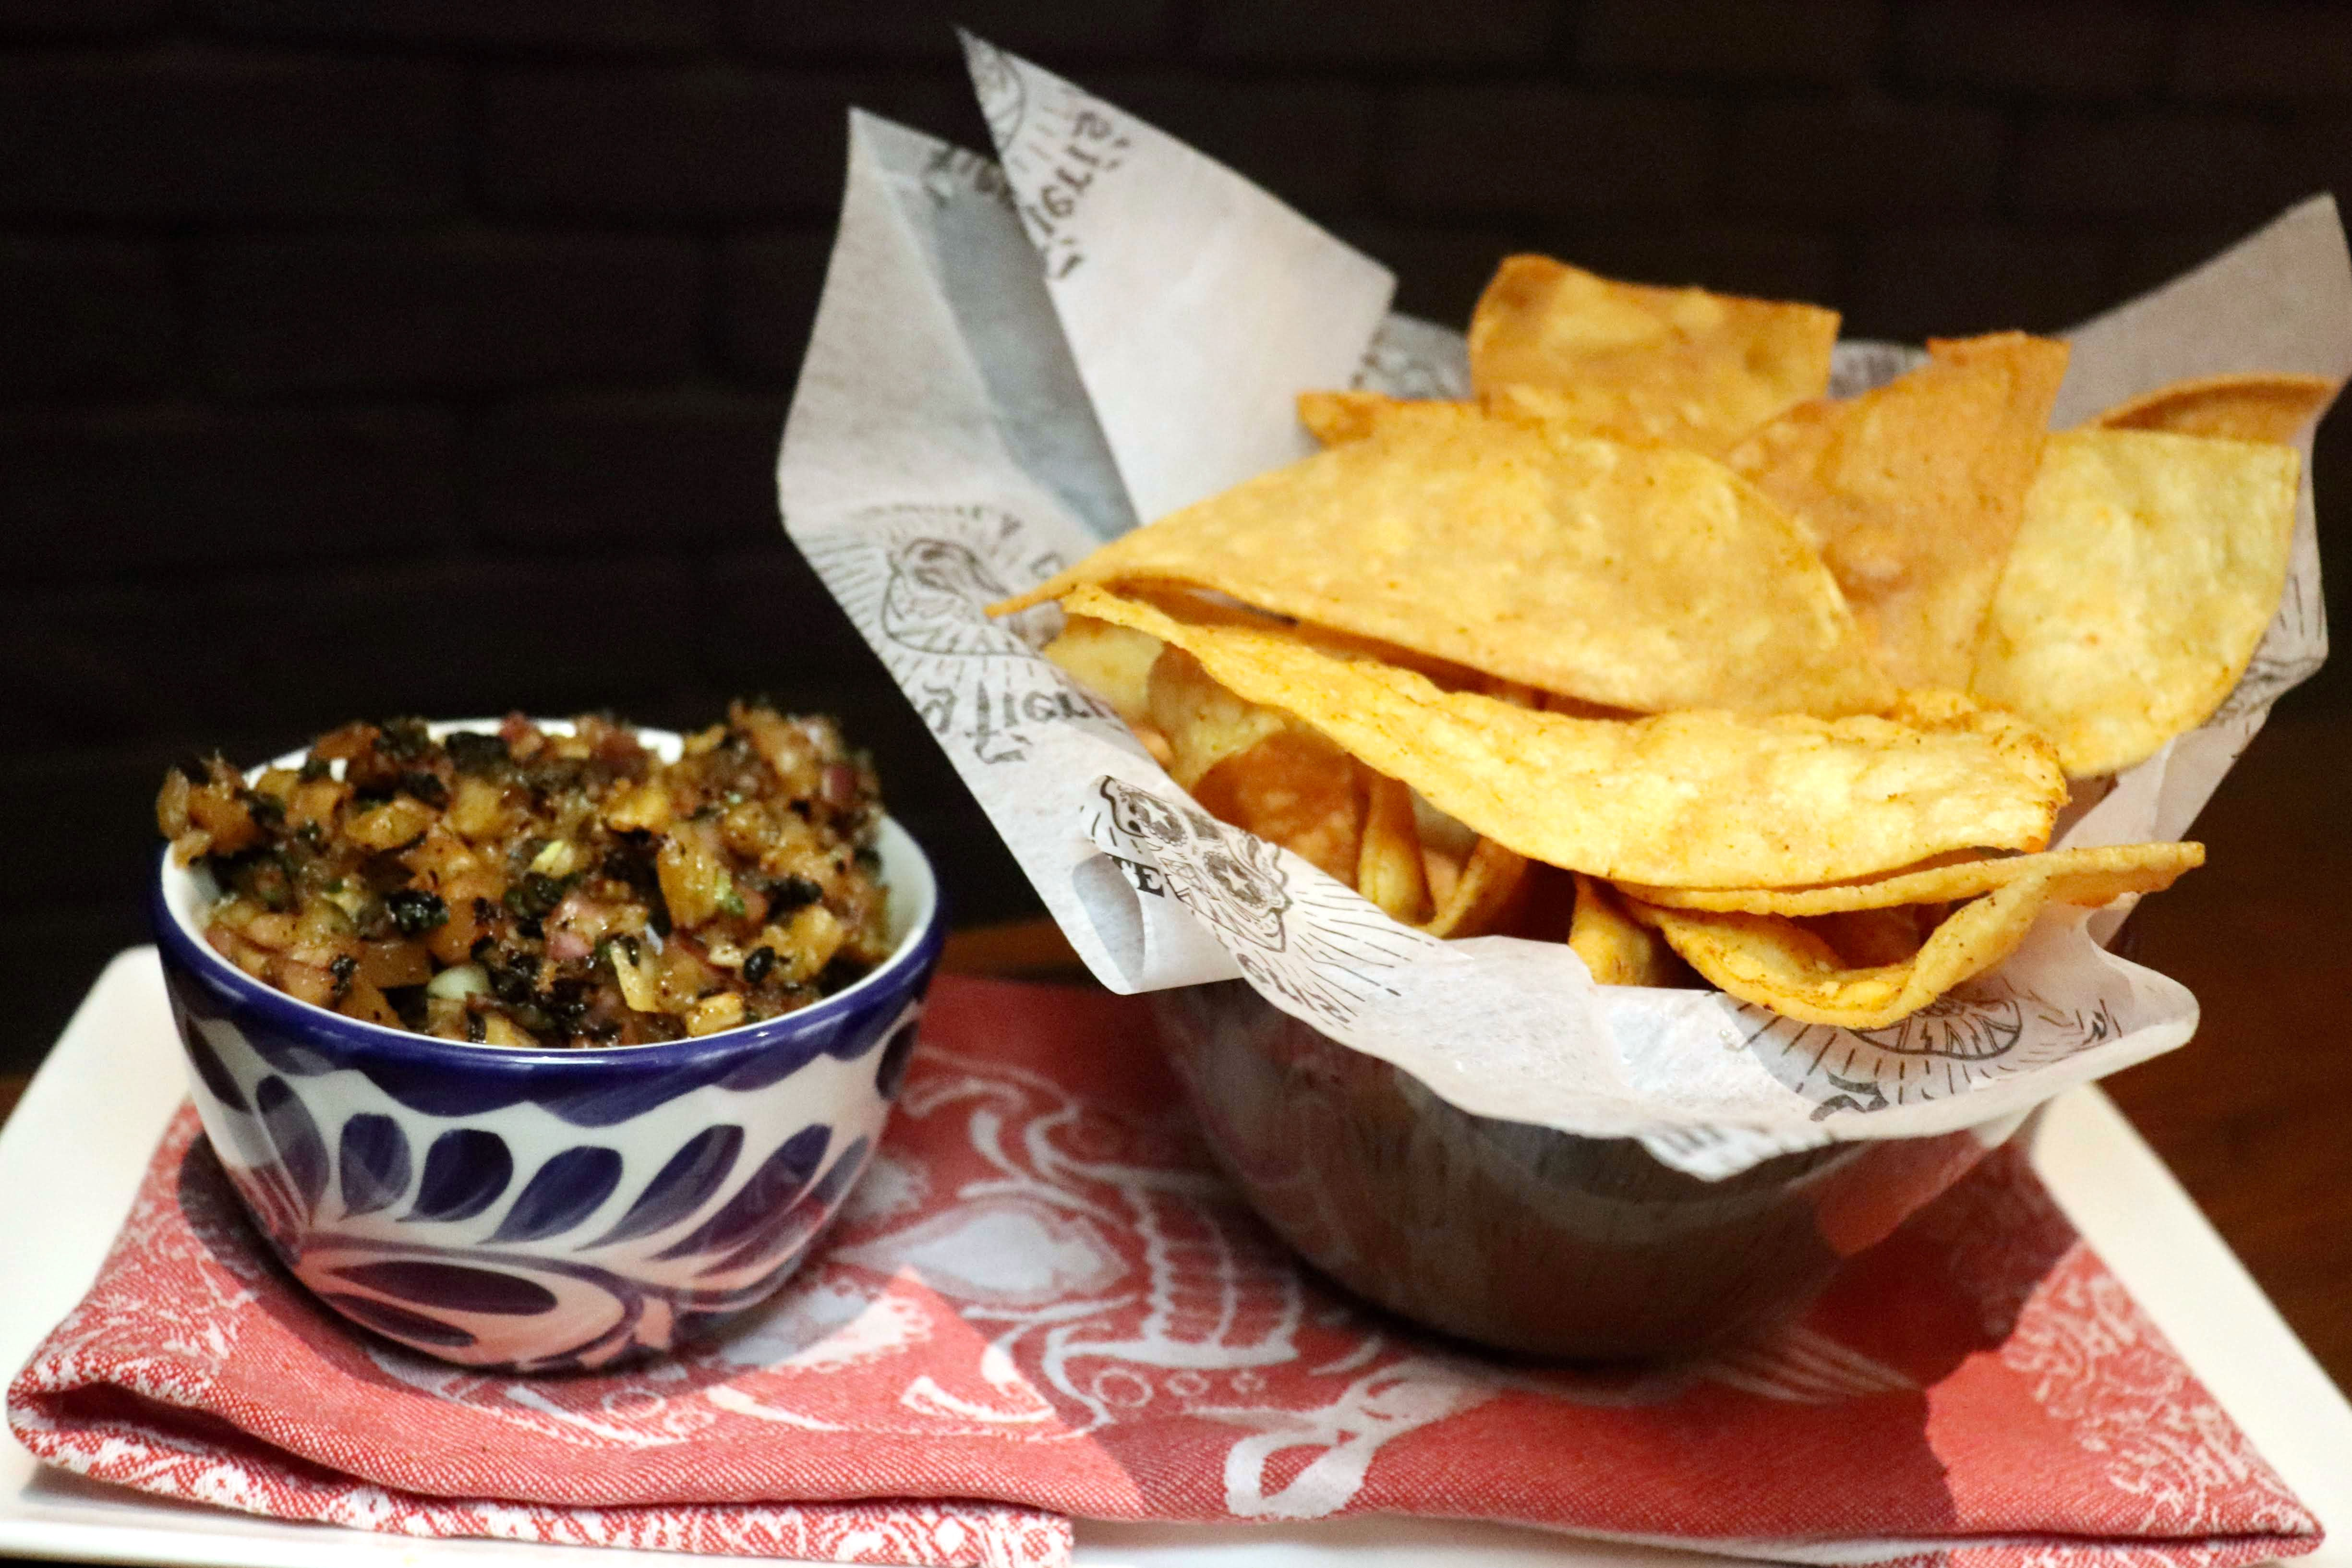 Pineapple serrano salsa with chips